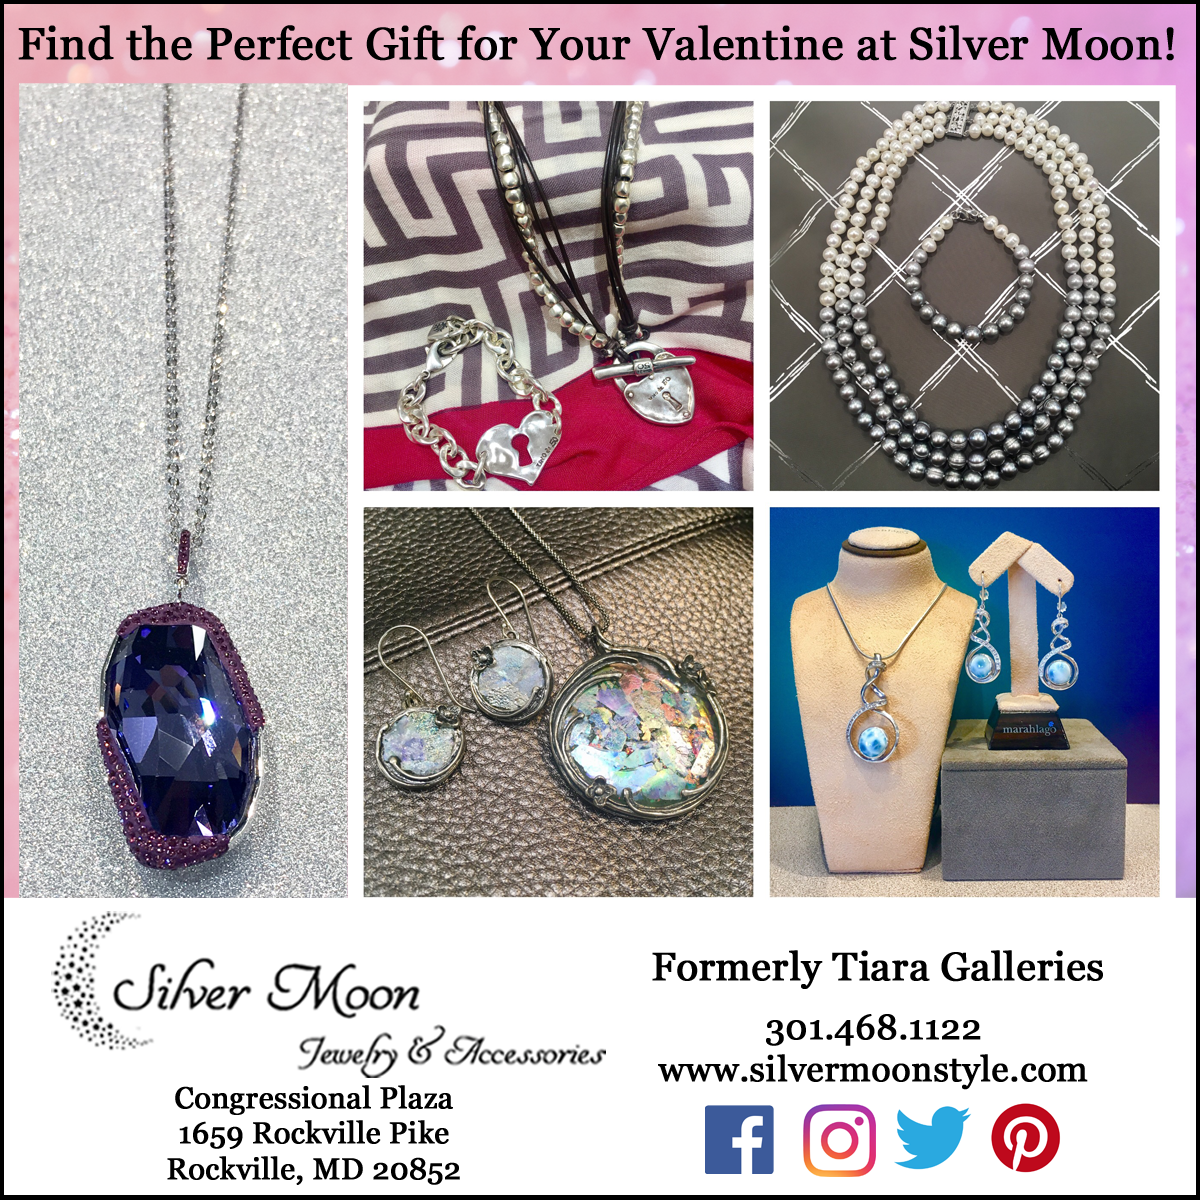 Silver Moon Jewelry & Accessories at Congressional Plaza: http://www.silvermoonstyle.com